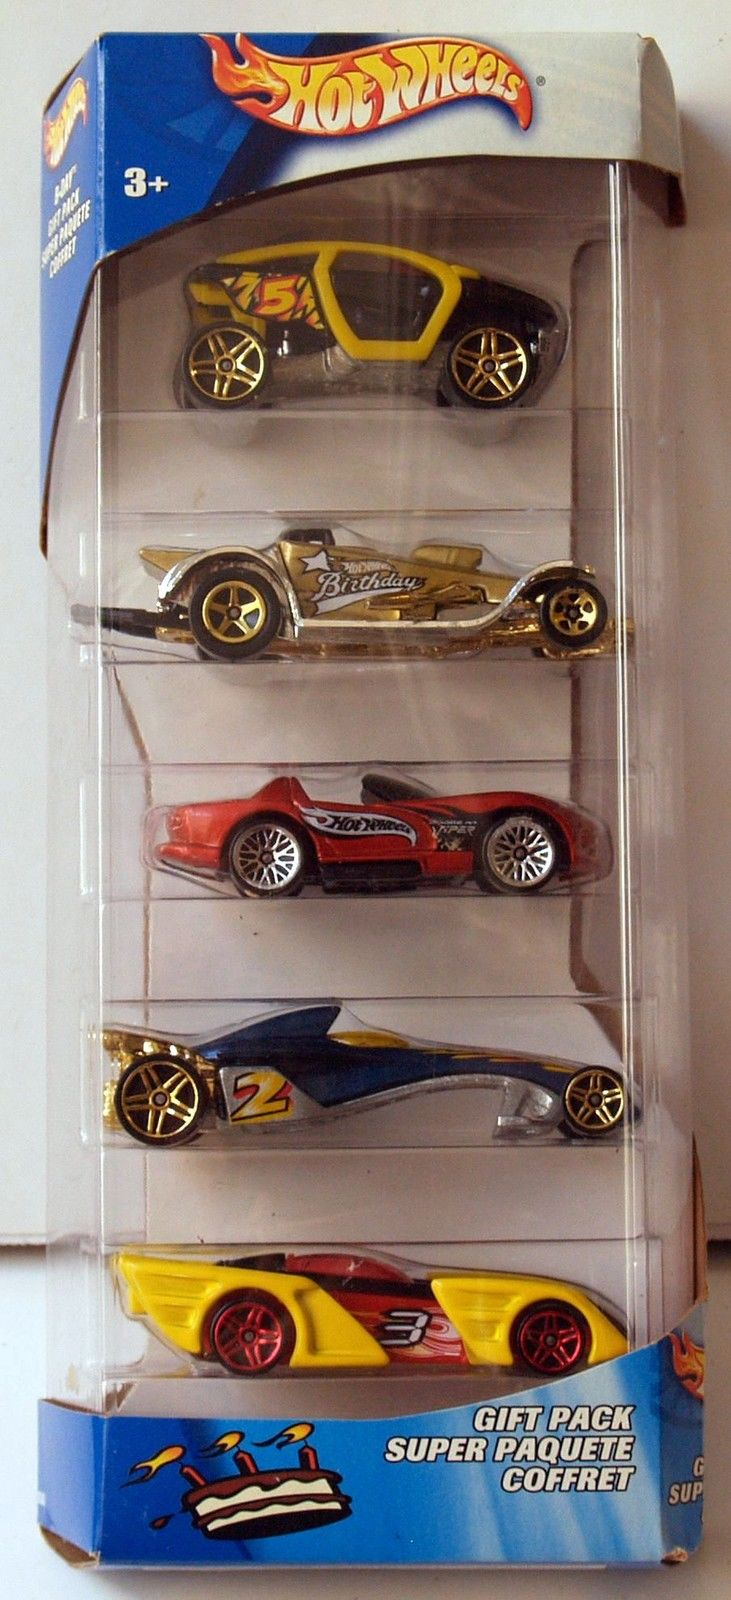 2002 HOT WHEELS - GIFT PACK SUPER PAQUETE COFFRET - 5 CAR PACK